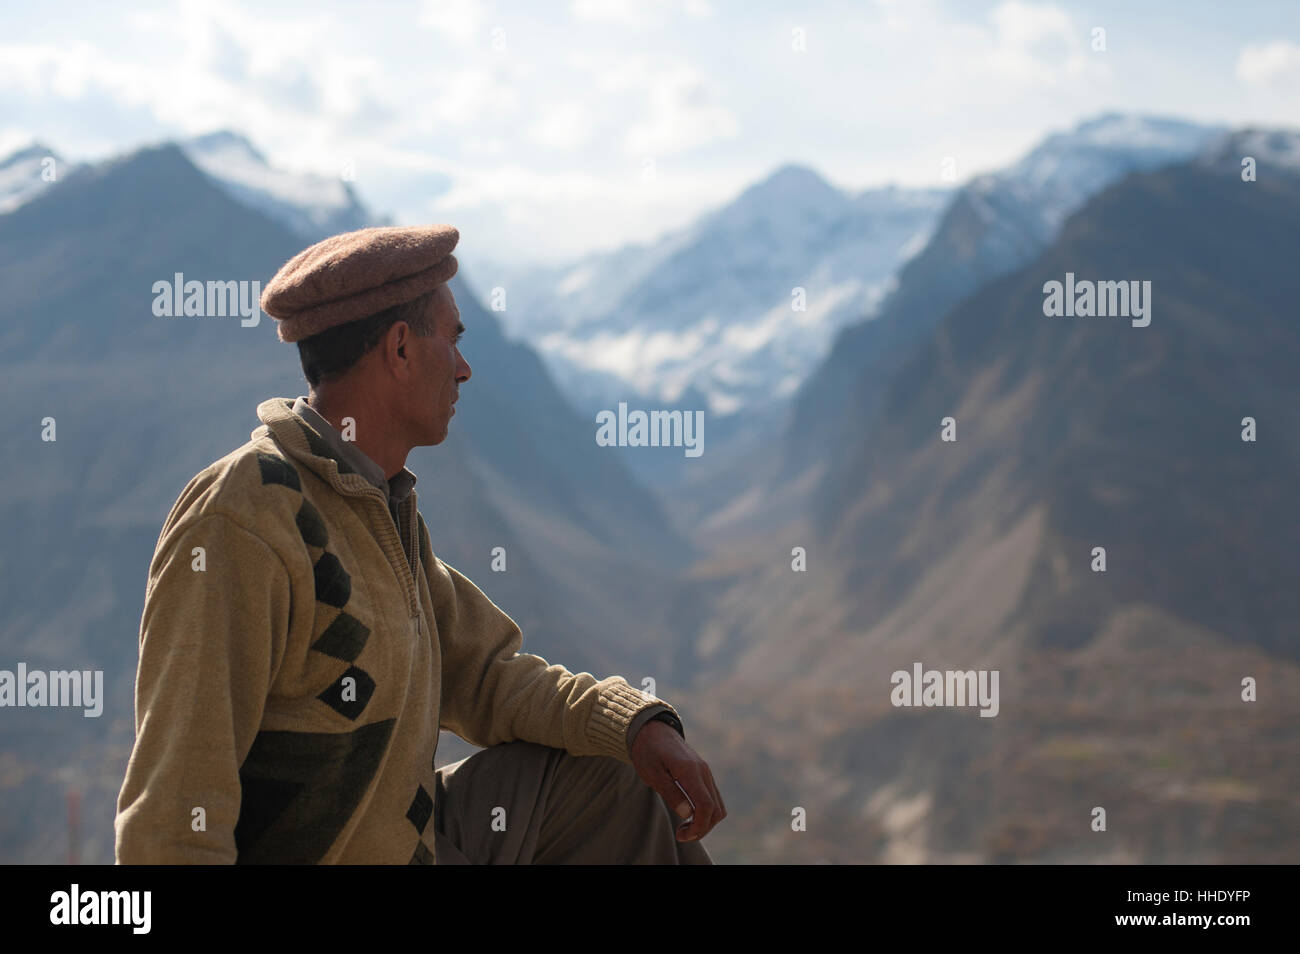 A man looks out over the Hunza Valley, Gilgit-Baltistan, Pakistan Stock Photo